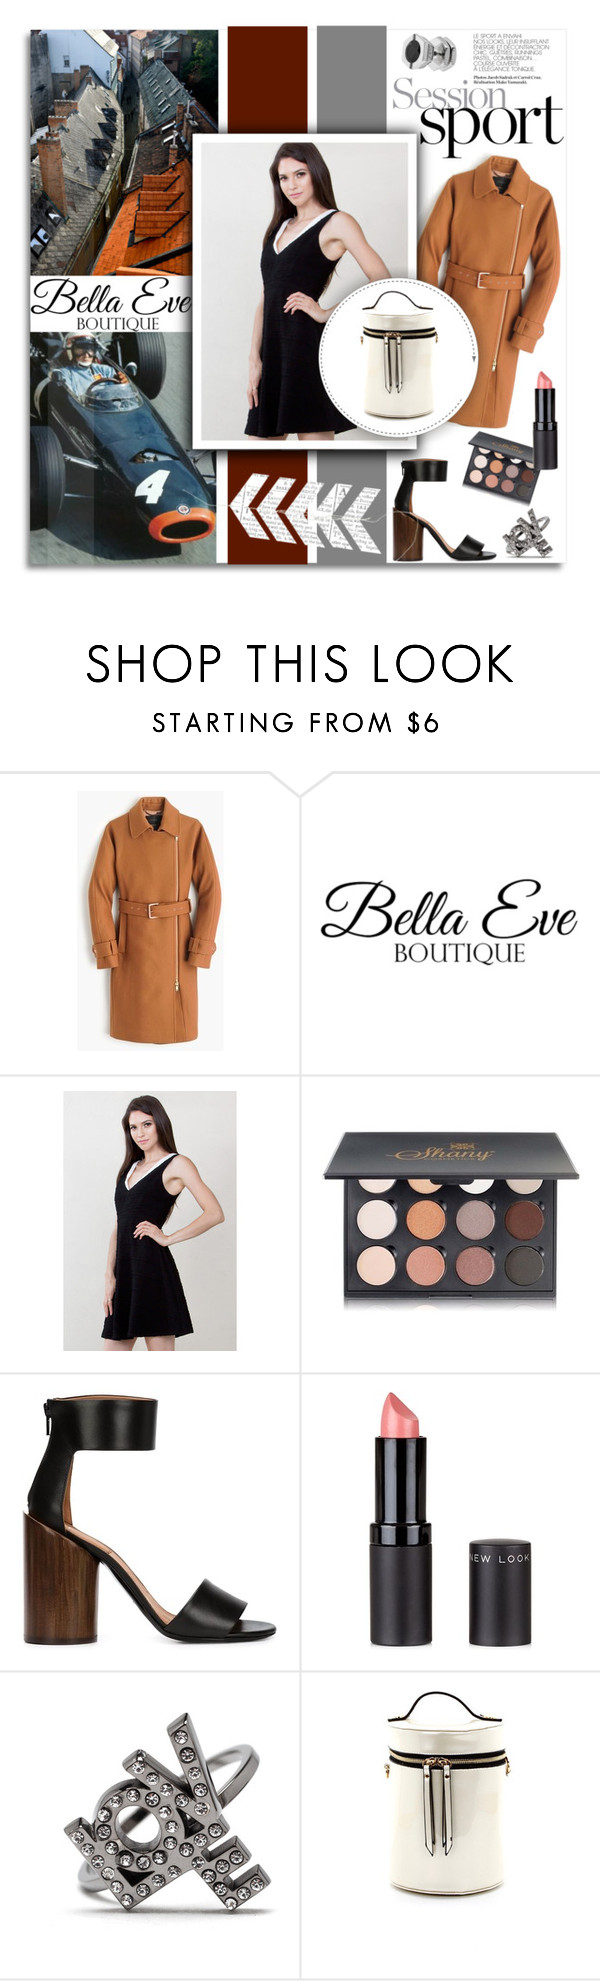 """""""Session Sport...Bella Eve"""" by melissa-de-souza ❤ liked on Polyvore featuring J.Crew, Shany, Givenchy, Yves Saint Laurent and BellaEveBoutique"""